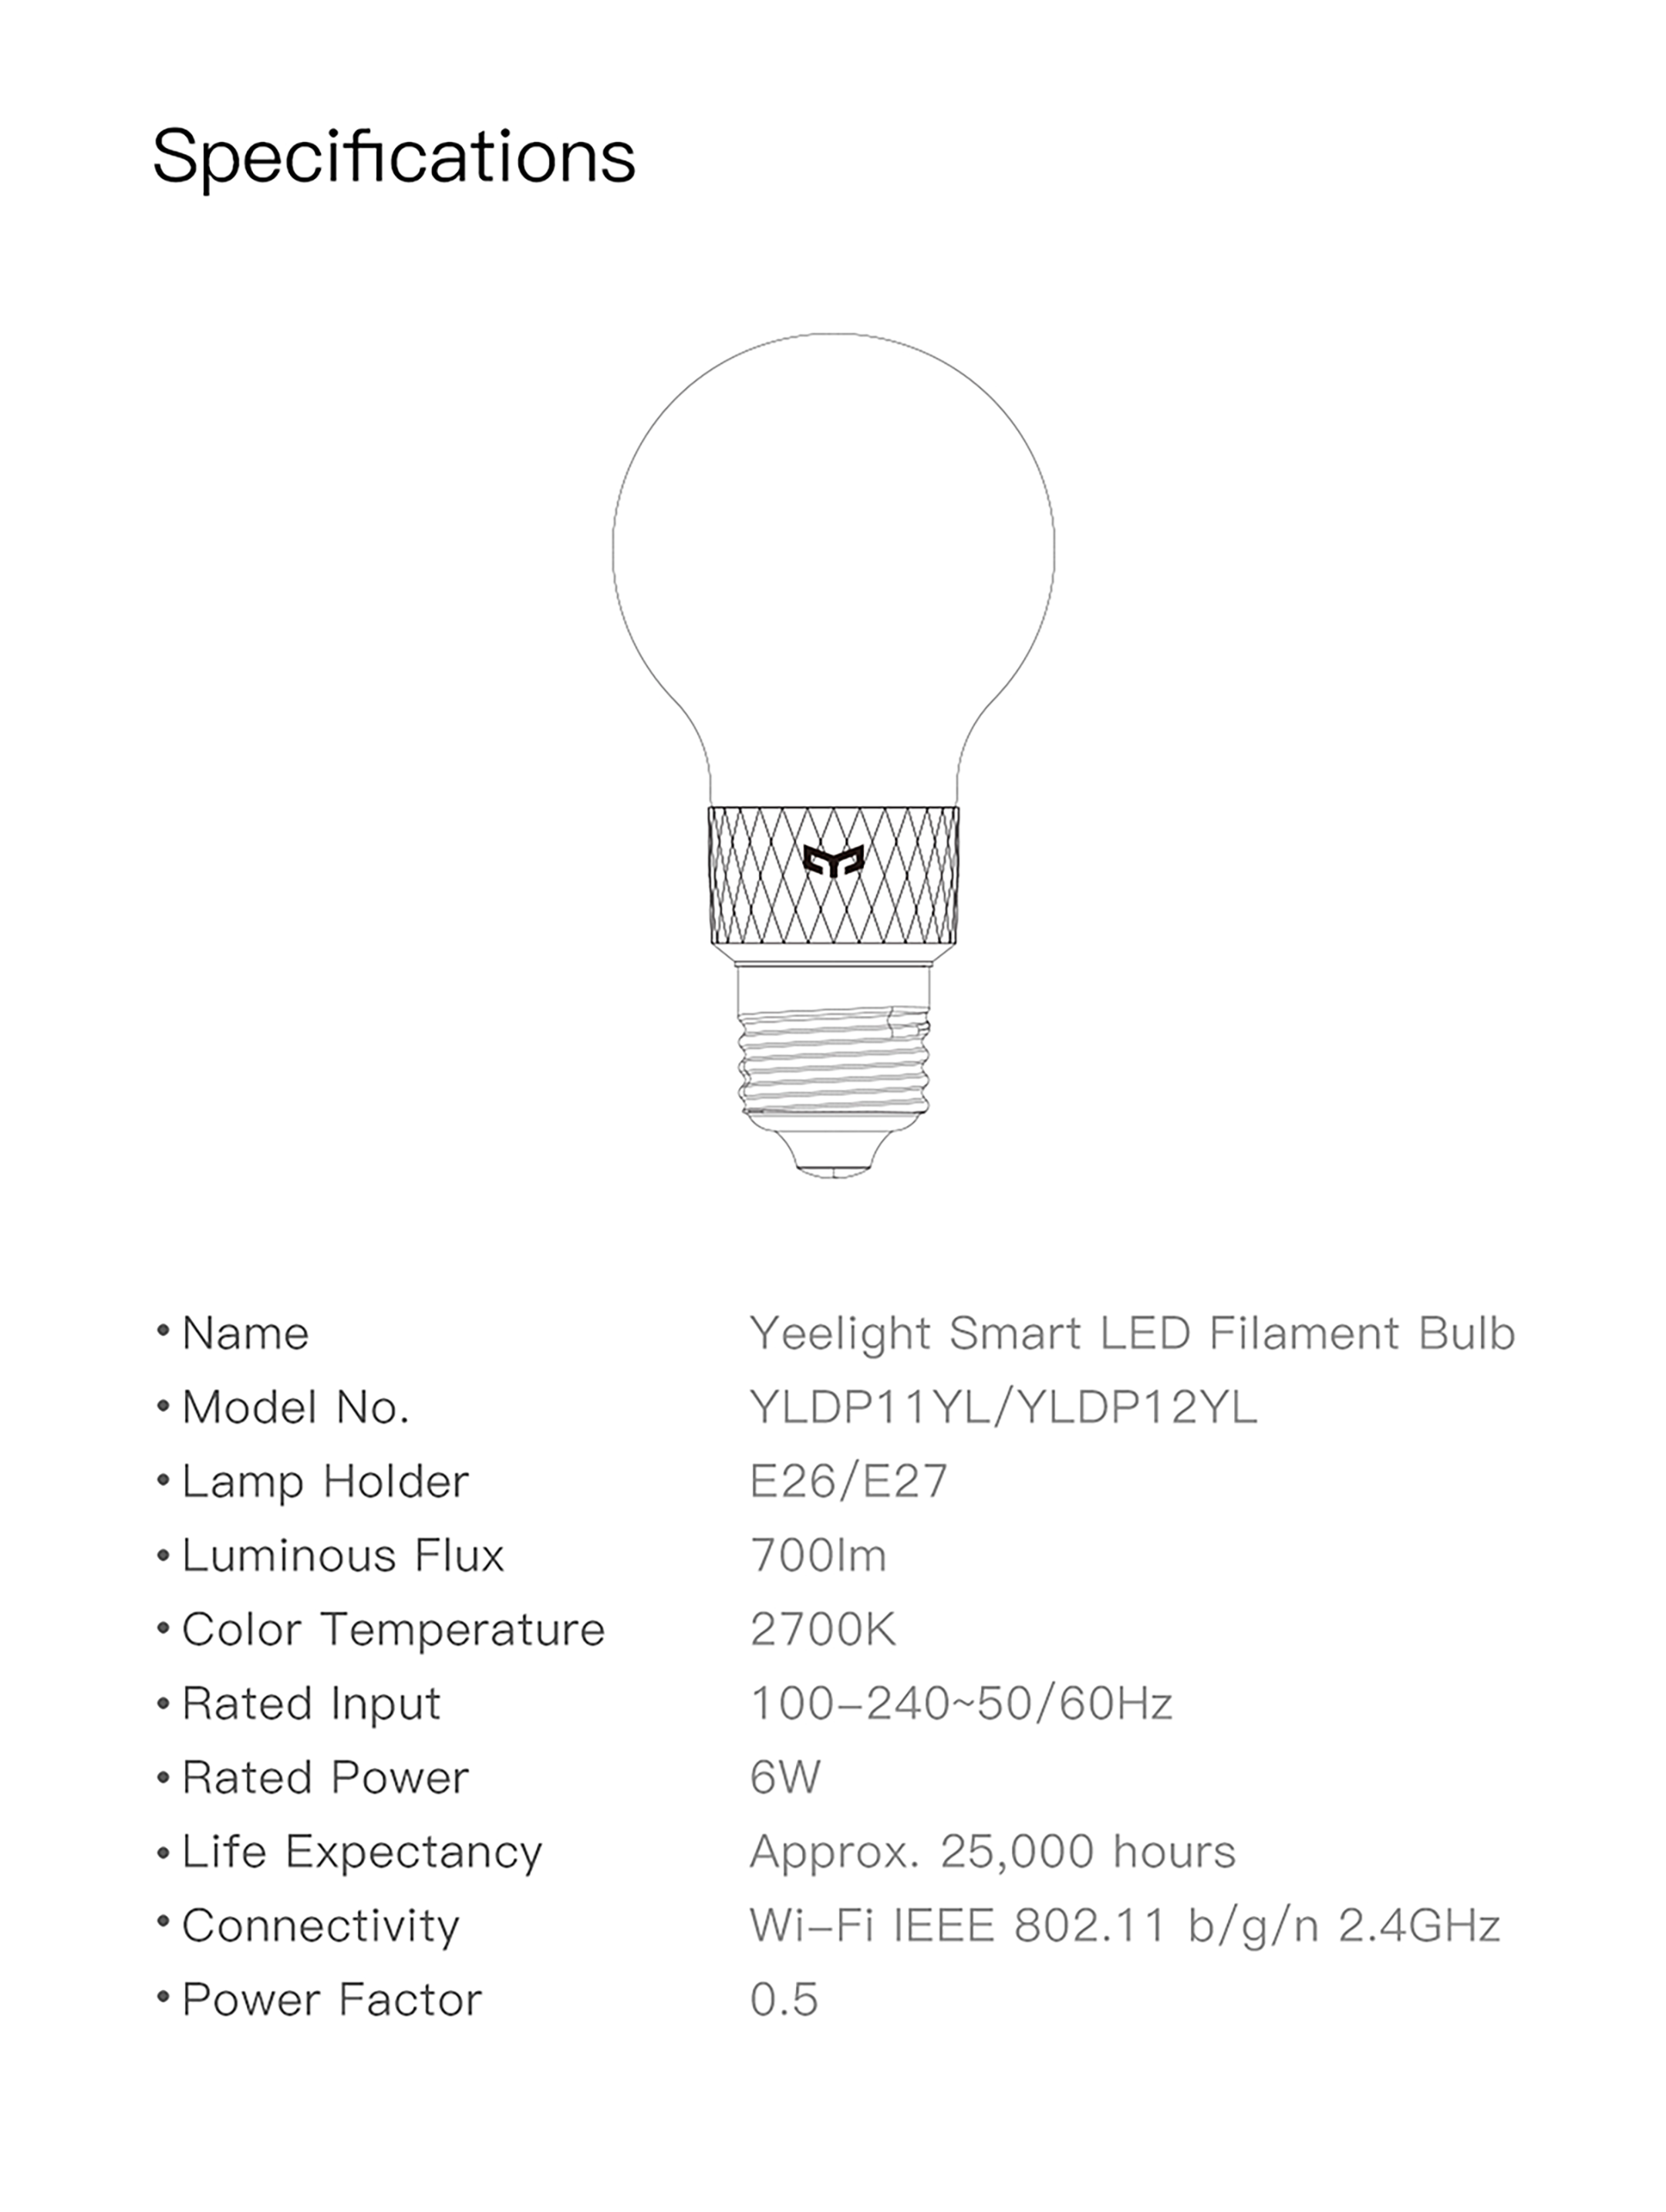 Yeelight Smart LED Filament Bulb